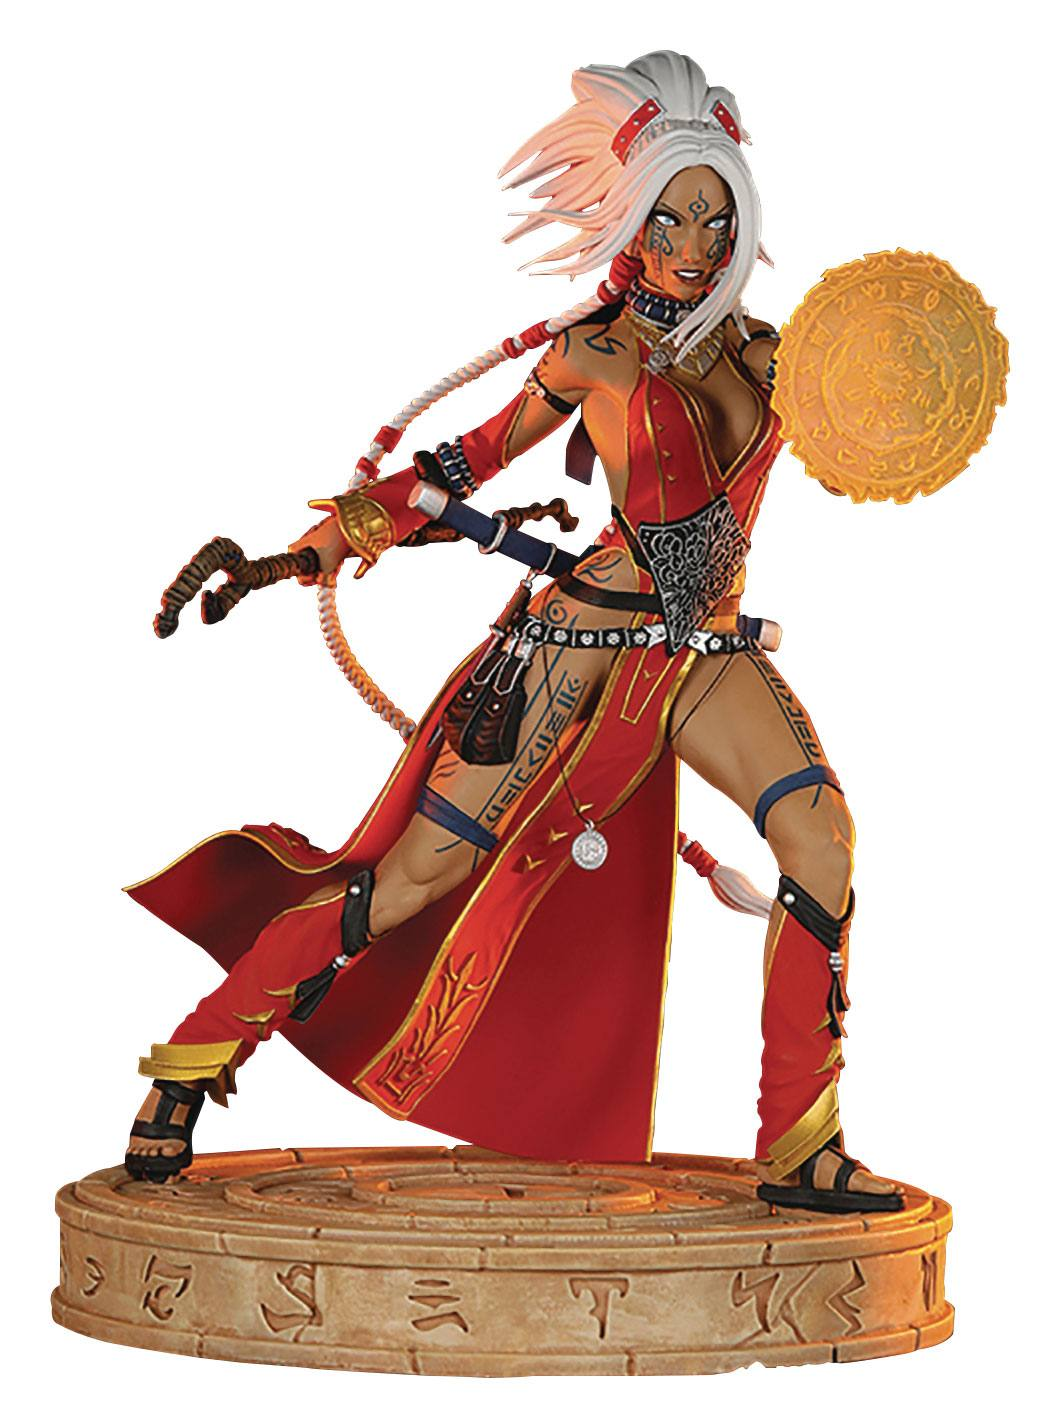 Seoni Spellcasting Pathfinder Statue by Dynamite Entertainment